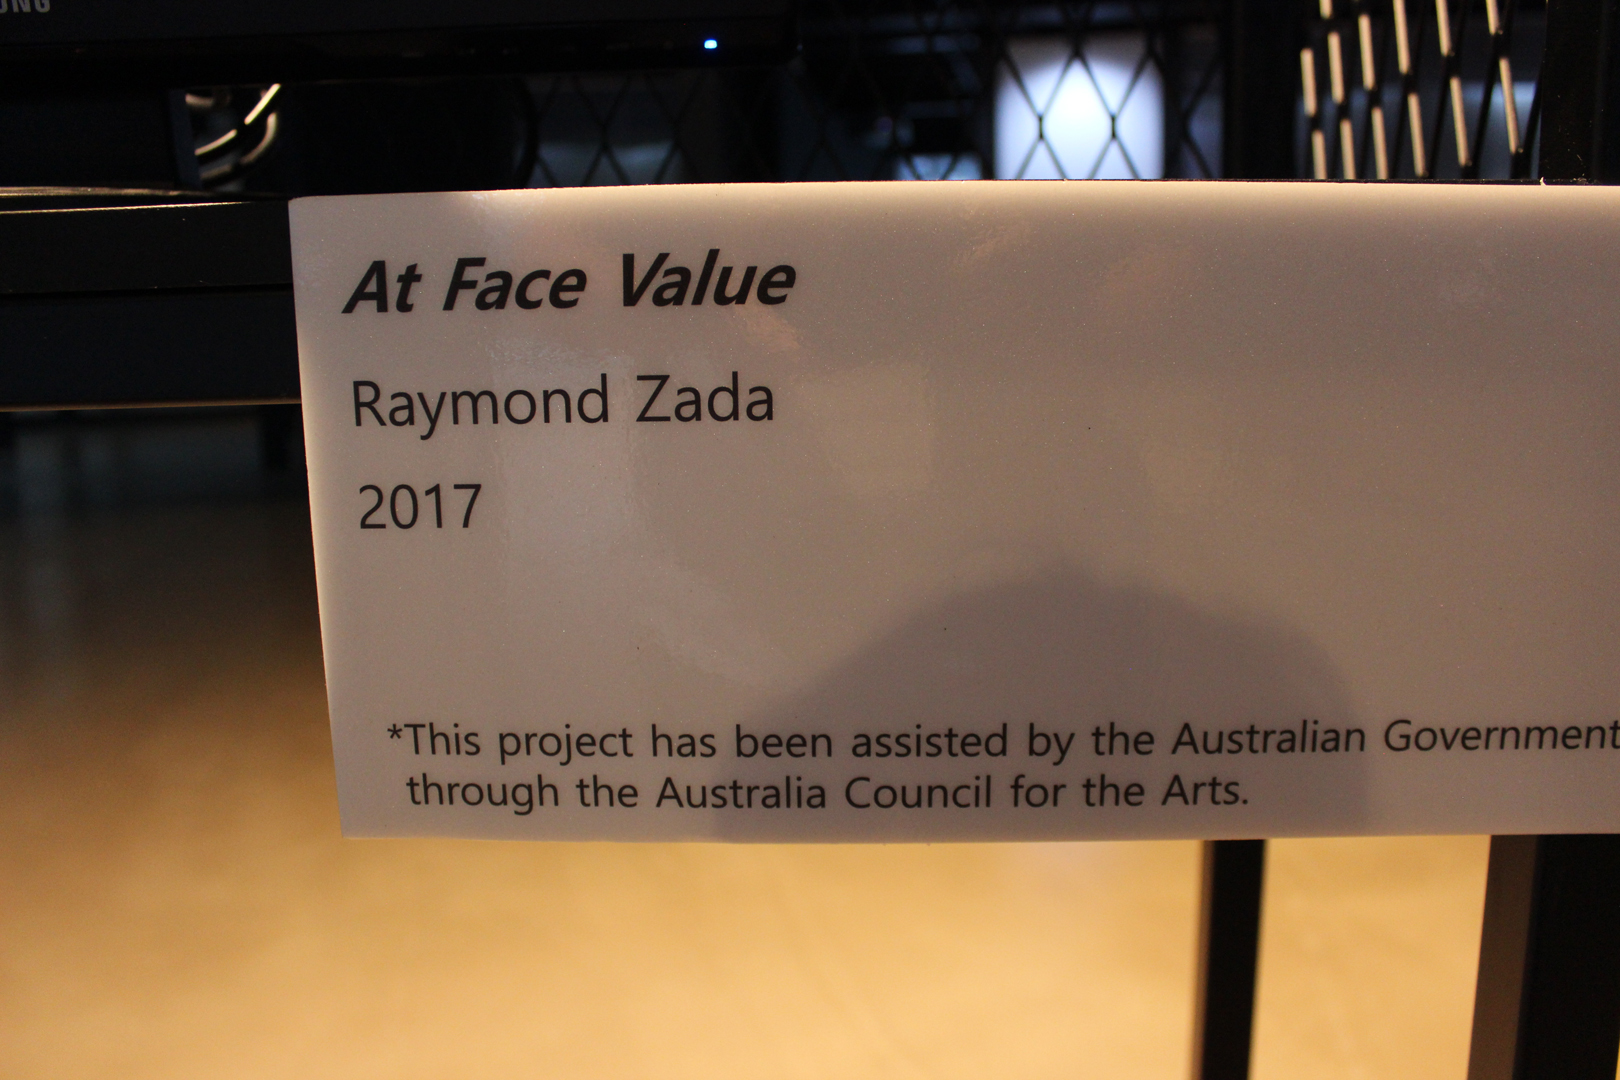 ©, Raymond Zada, At Face Value